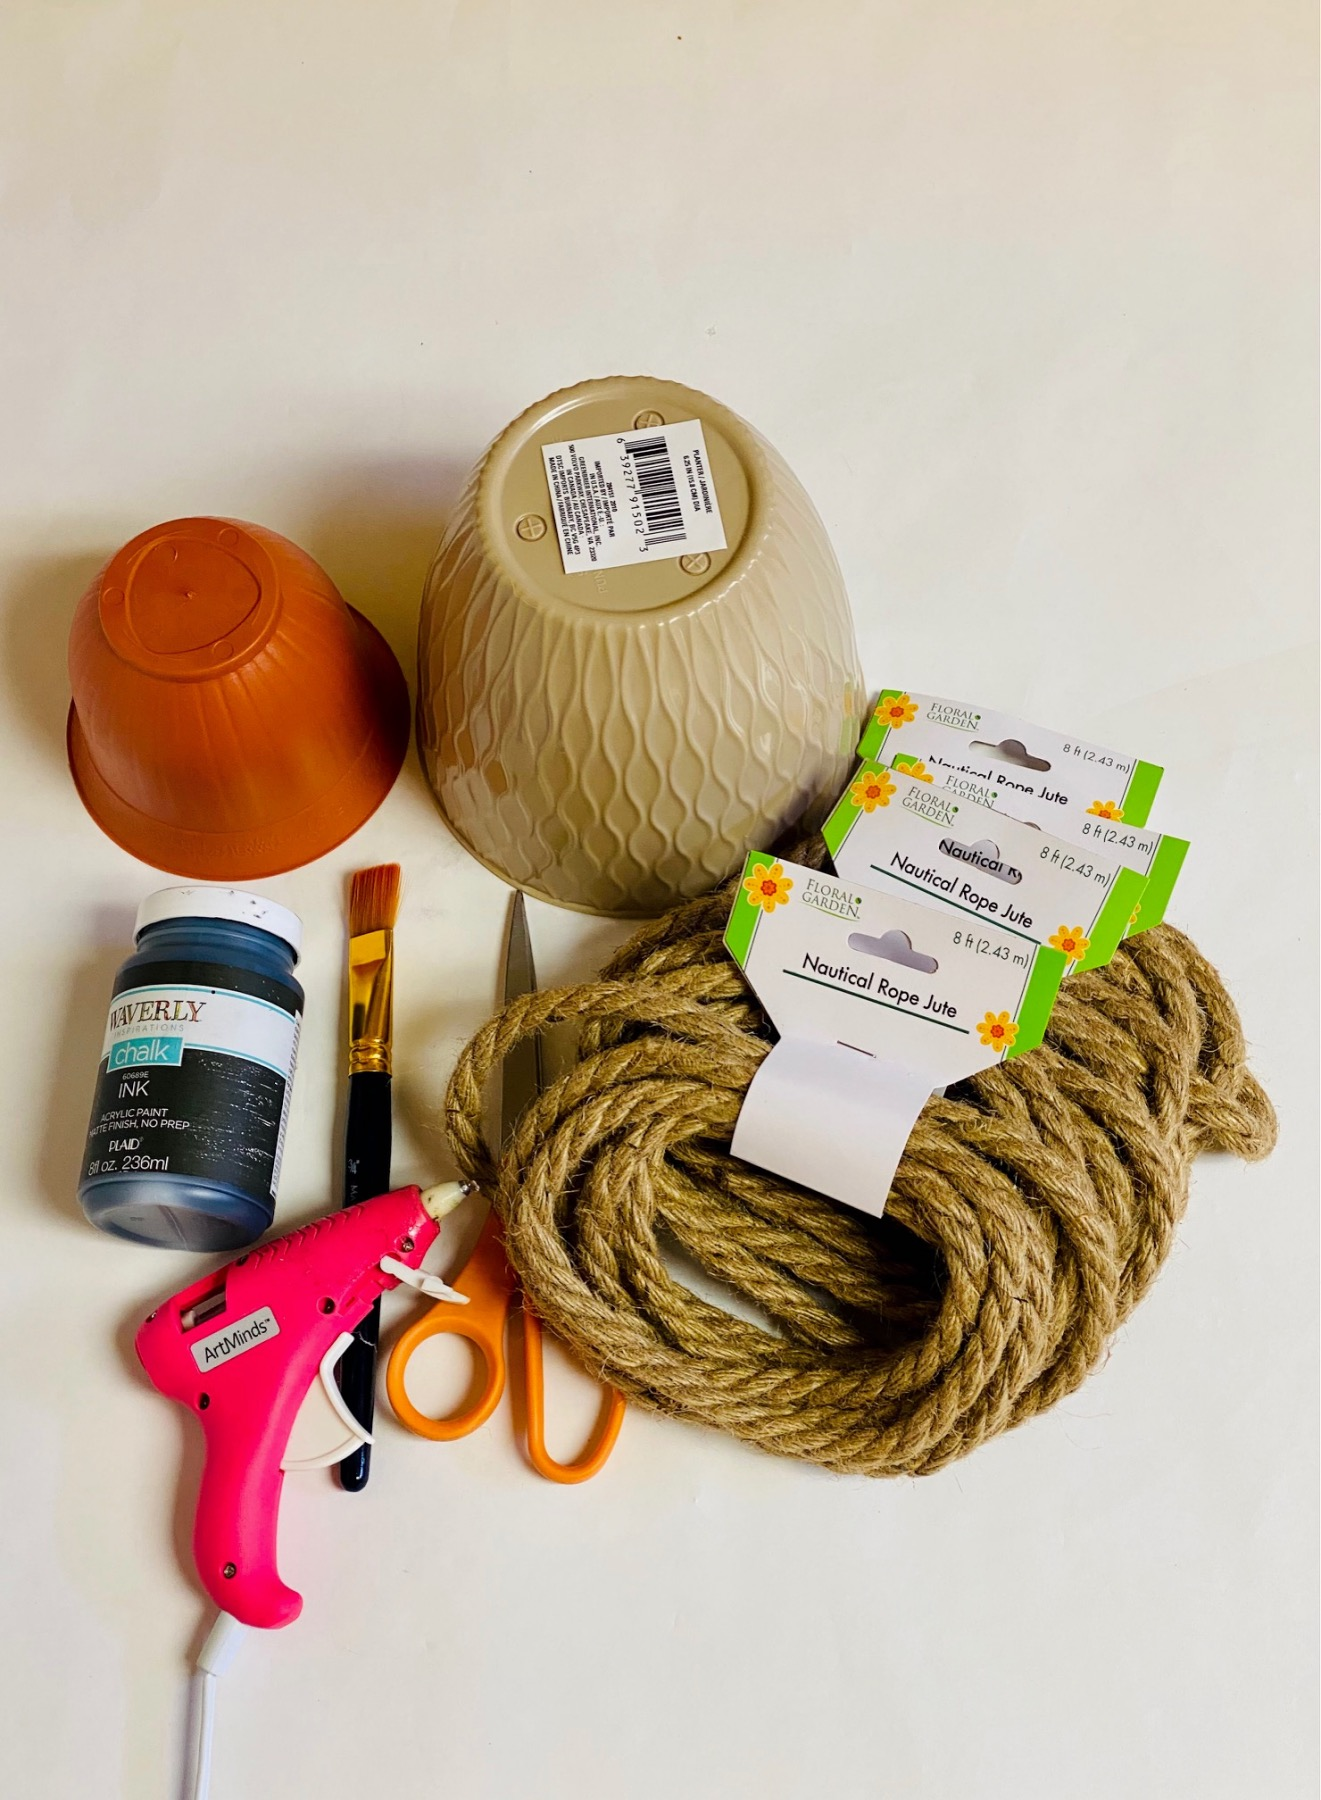 supplies to make a rope beehive decoration